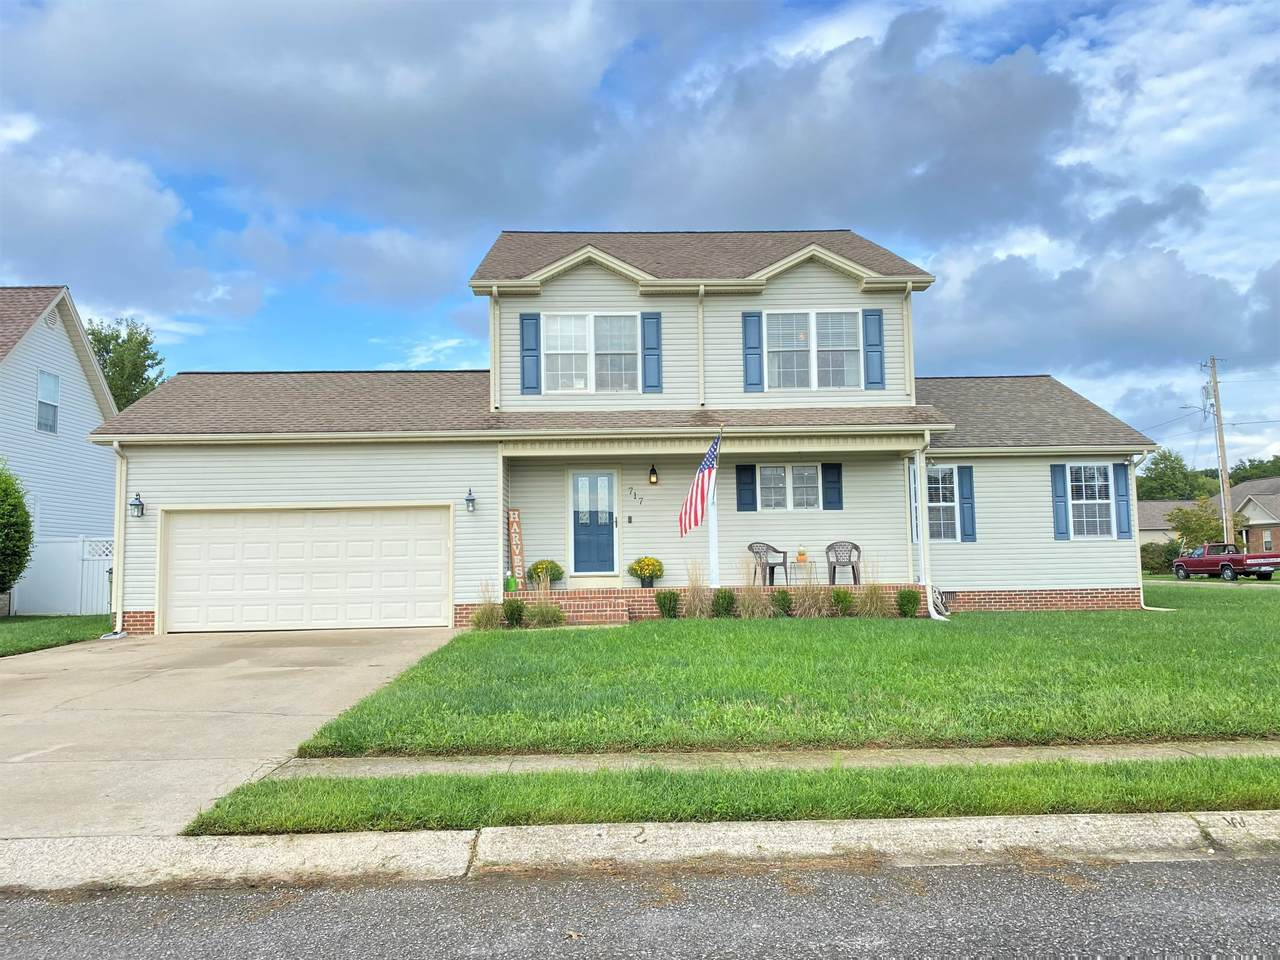 717 Claw Ct - Photo 1